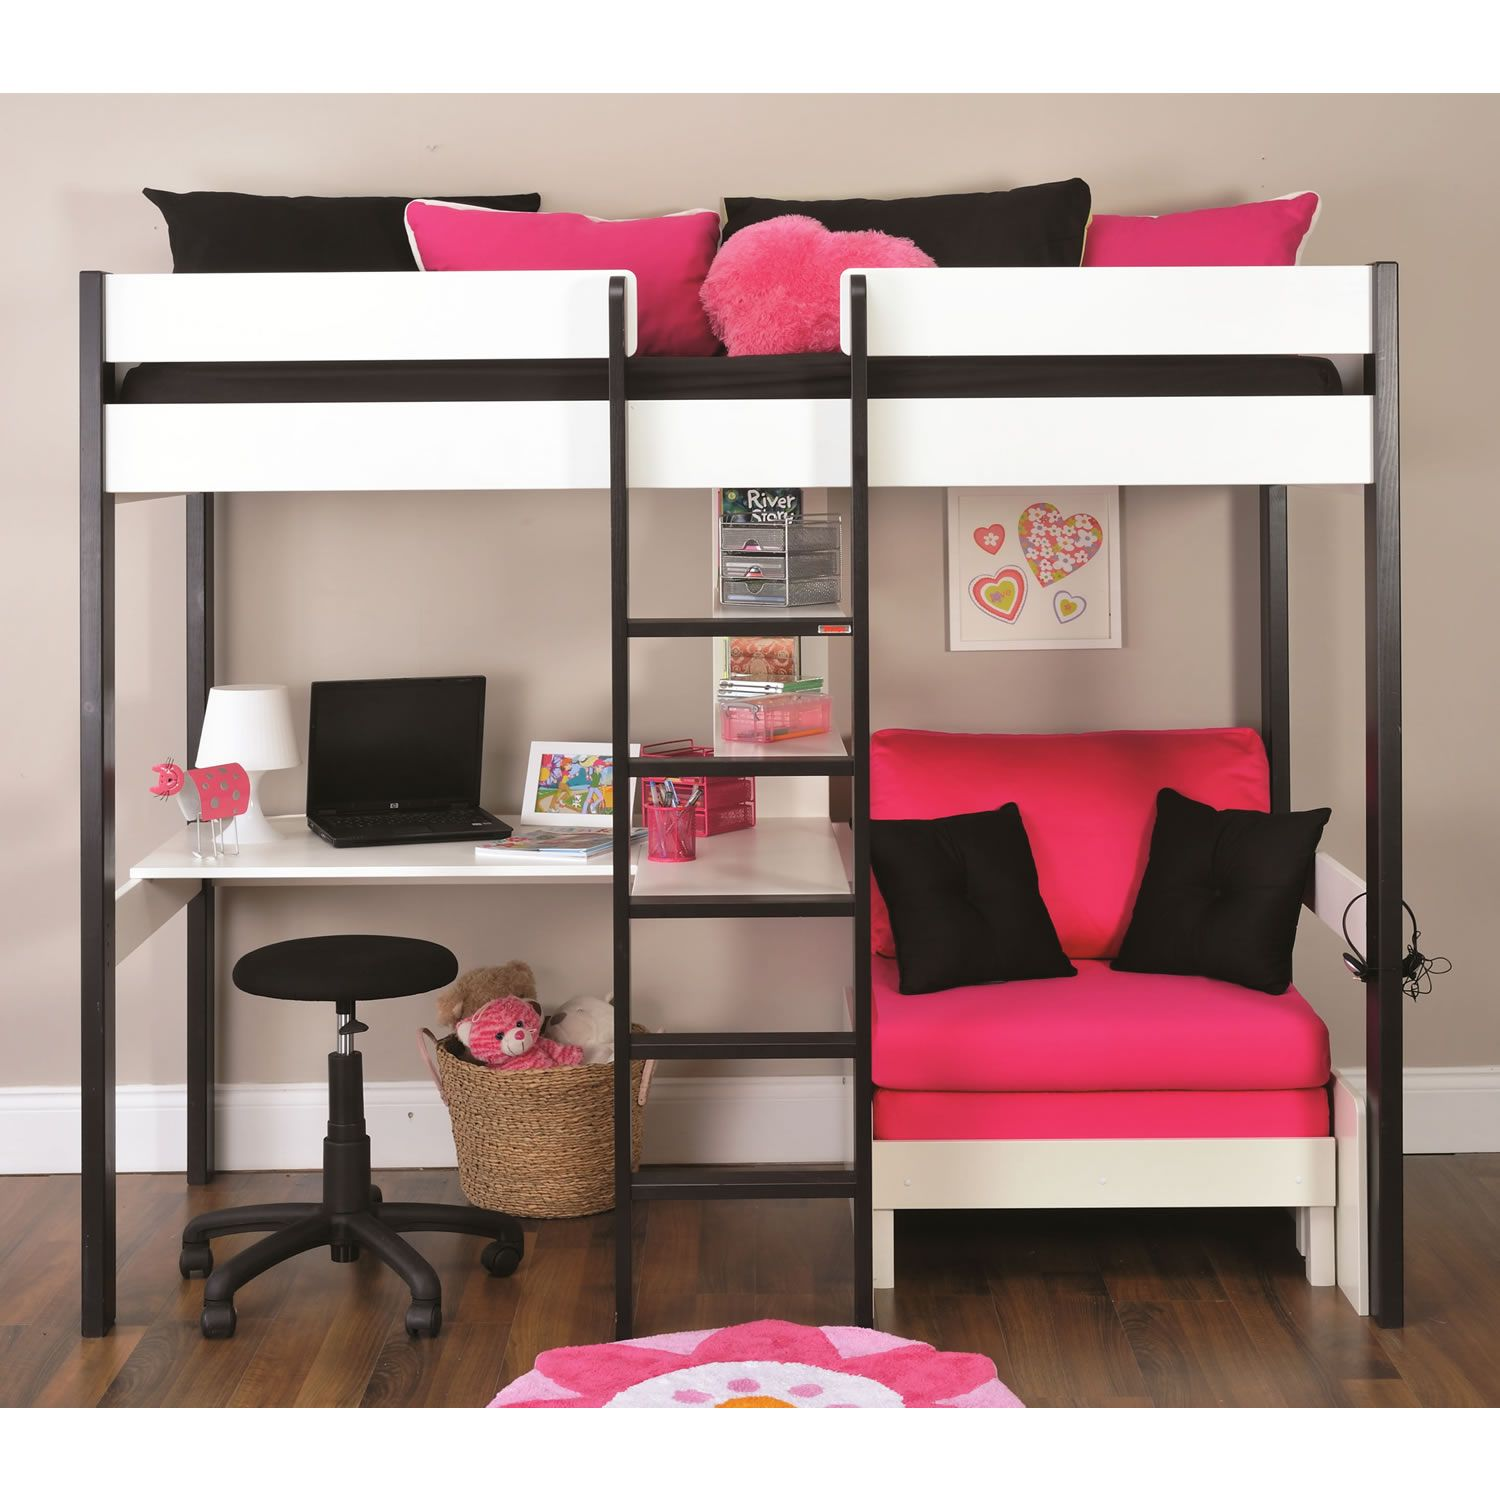 The Stompa Storage Bunk Bed Frame provides sleeping space for 2